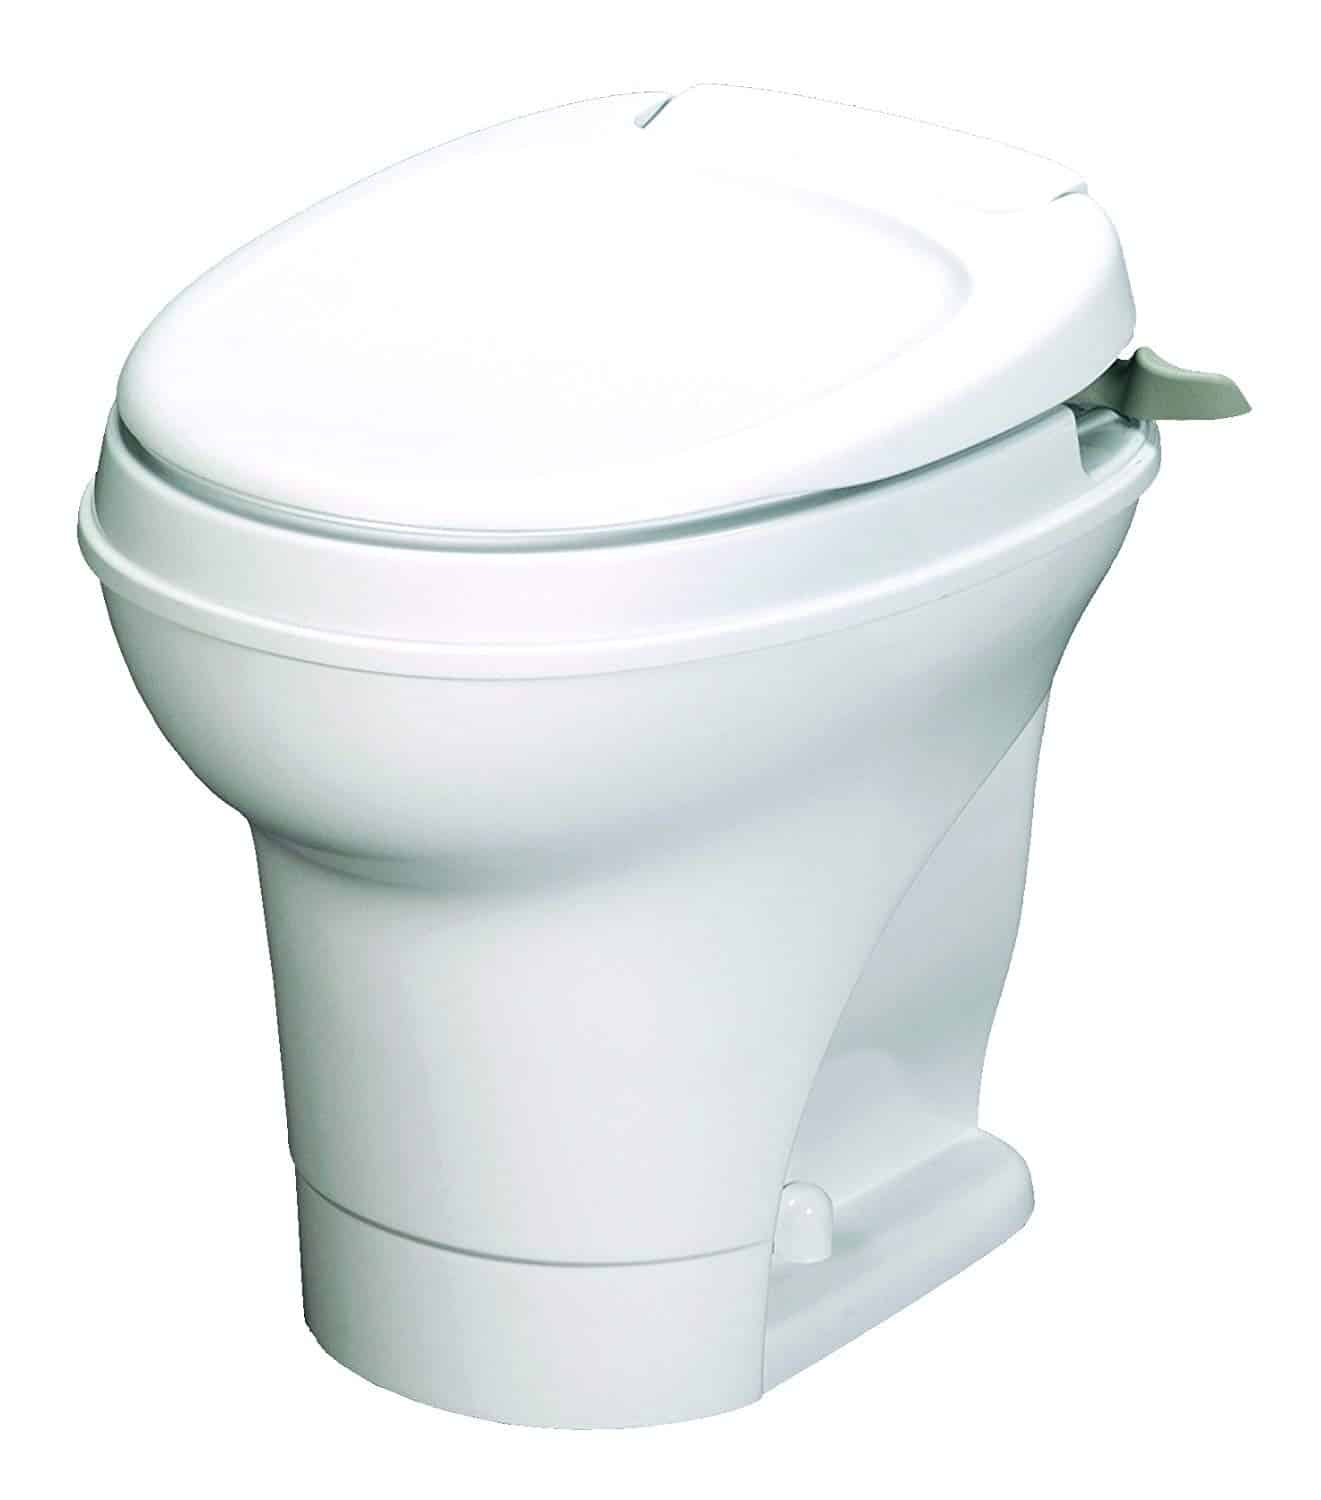 Thetford Aqua-Magic V RV Toilet Hand Flush, High Profile, White